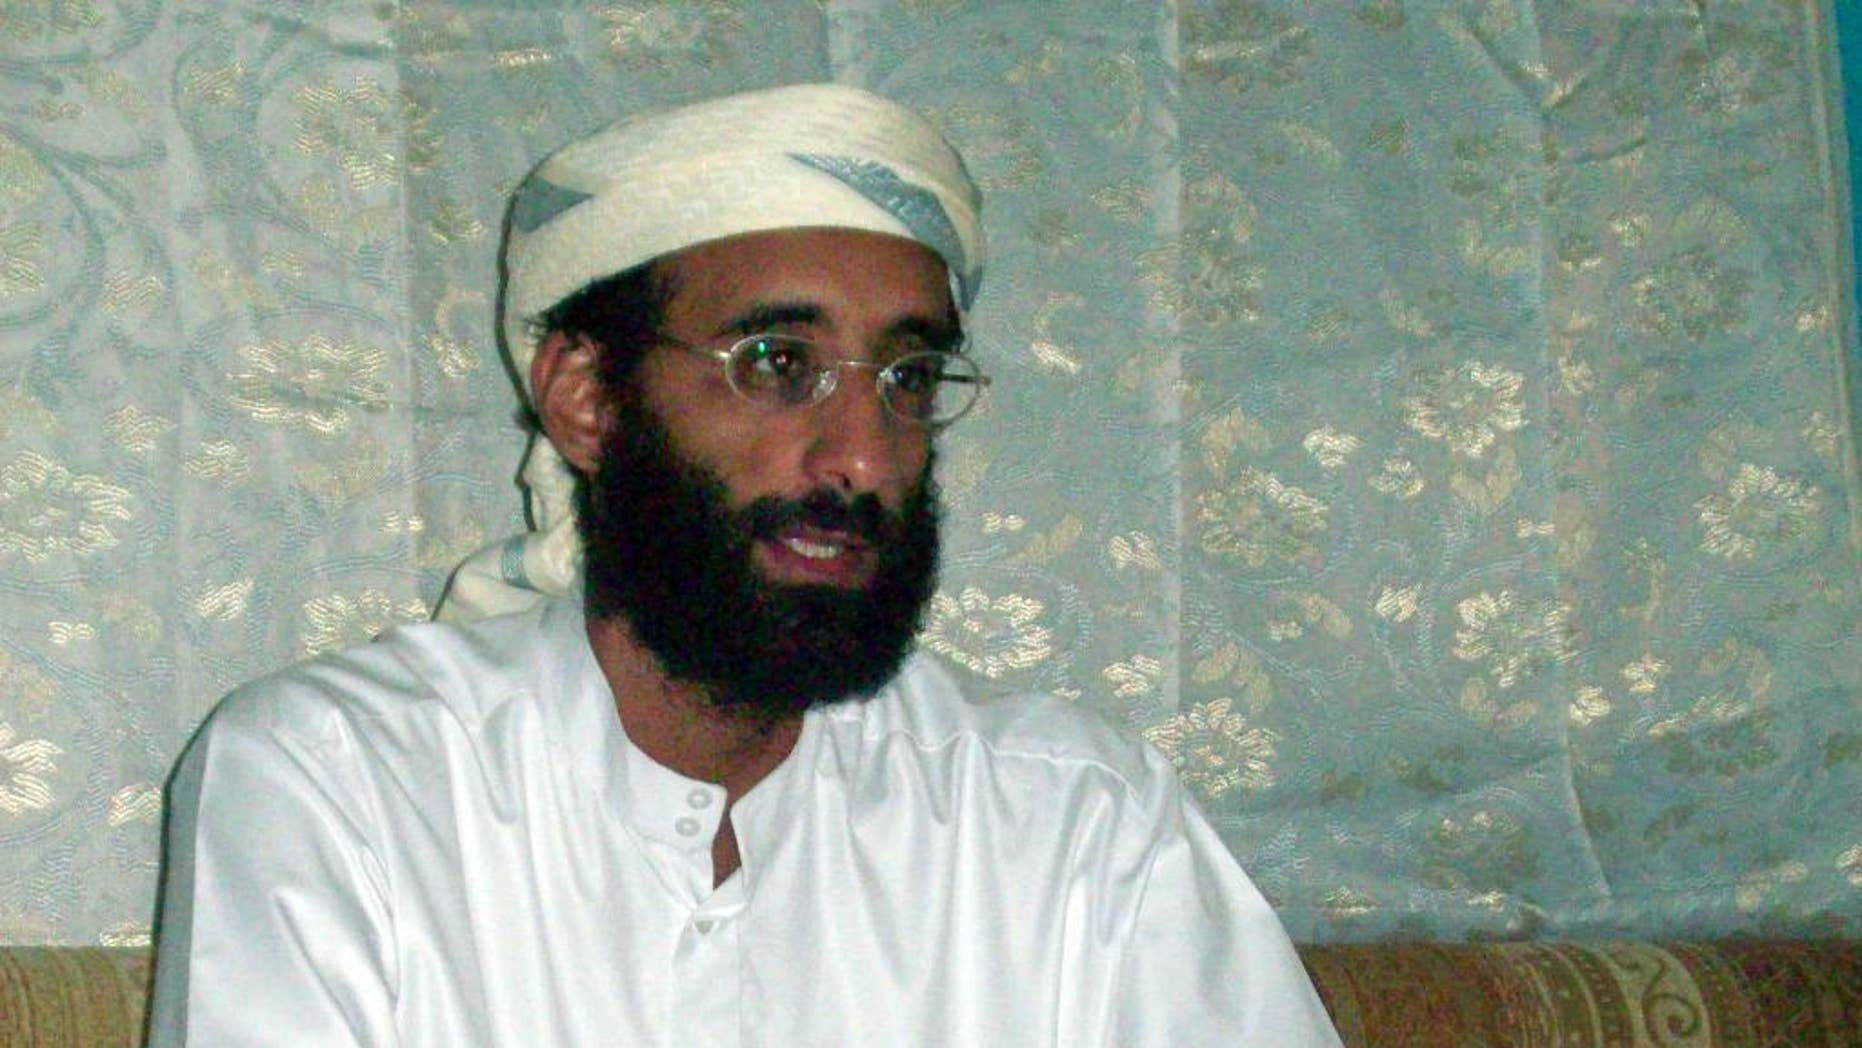 FILE - This October 2008, file photo shows Imam Anwar al-Awlaki in Yemen. Investigators say the blast that rocked New York's Chelsea neighborhood on Sept. 17, 2016, that injured more than two dozen people, was the latest in a long line of incidents in which the attacker was inspired by al-Awlaki, the American imam-turned al-Qaida propagandist who was killed by a U.S. drone strike five years ago. (AP Photo/Muhammad ud-Deen, File)